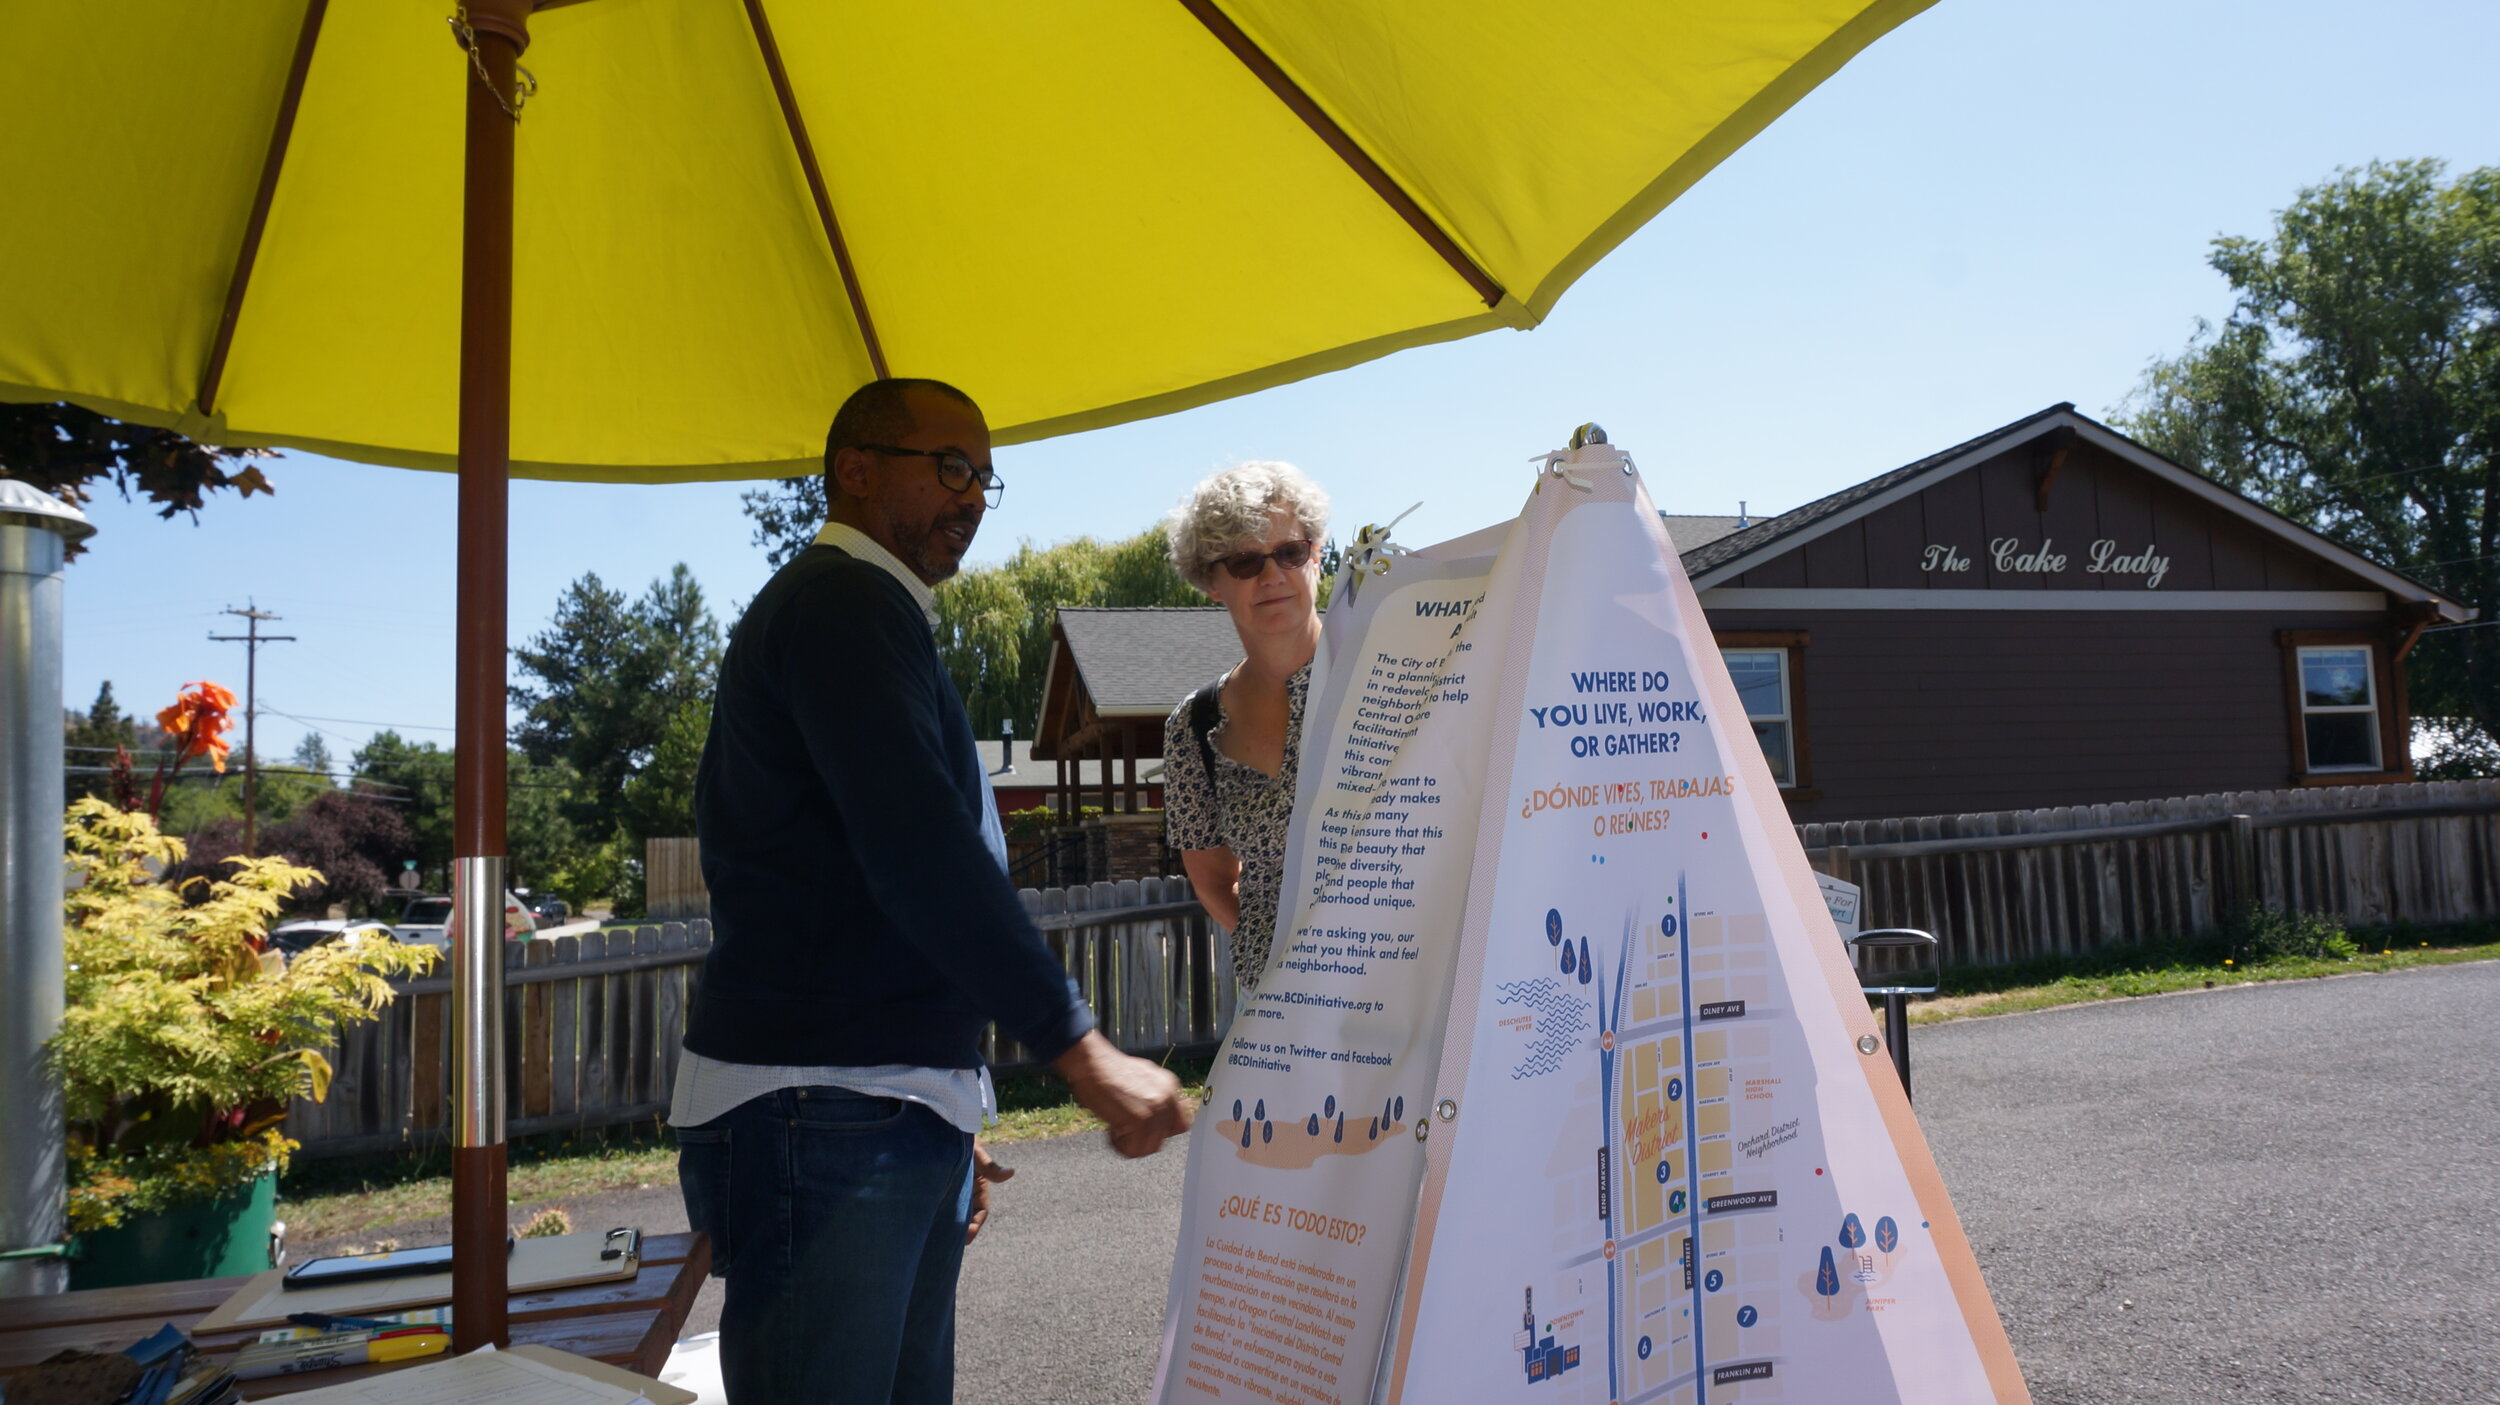 The engagement tool is custom made out of a flyer wagon shell with an added metal frame and tent-shaped unit with four panels that serve as the starting point for substantive conversations. It includes a map, pockets to collect sensory information, and asks for one-word to describe the area.